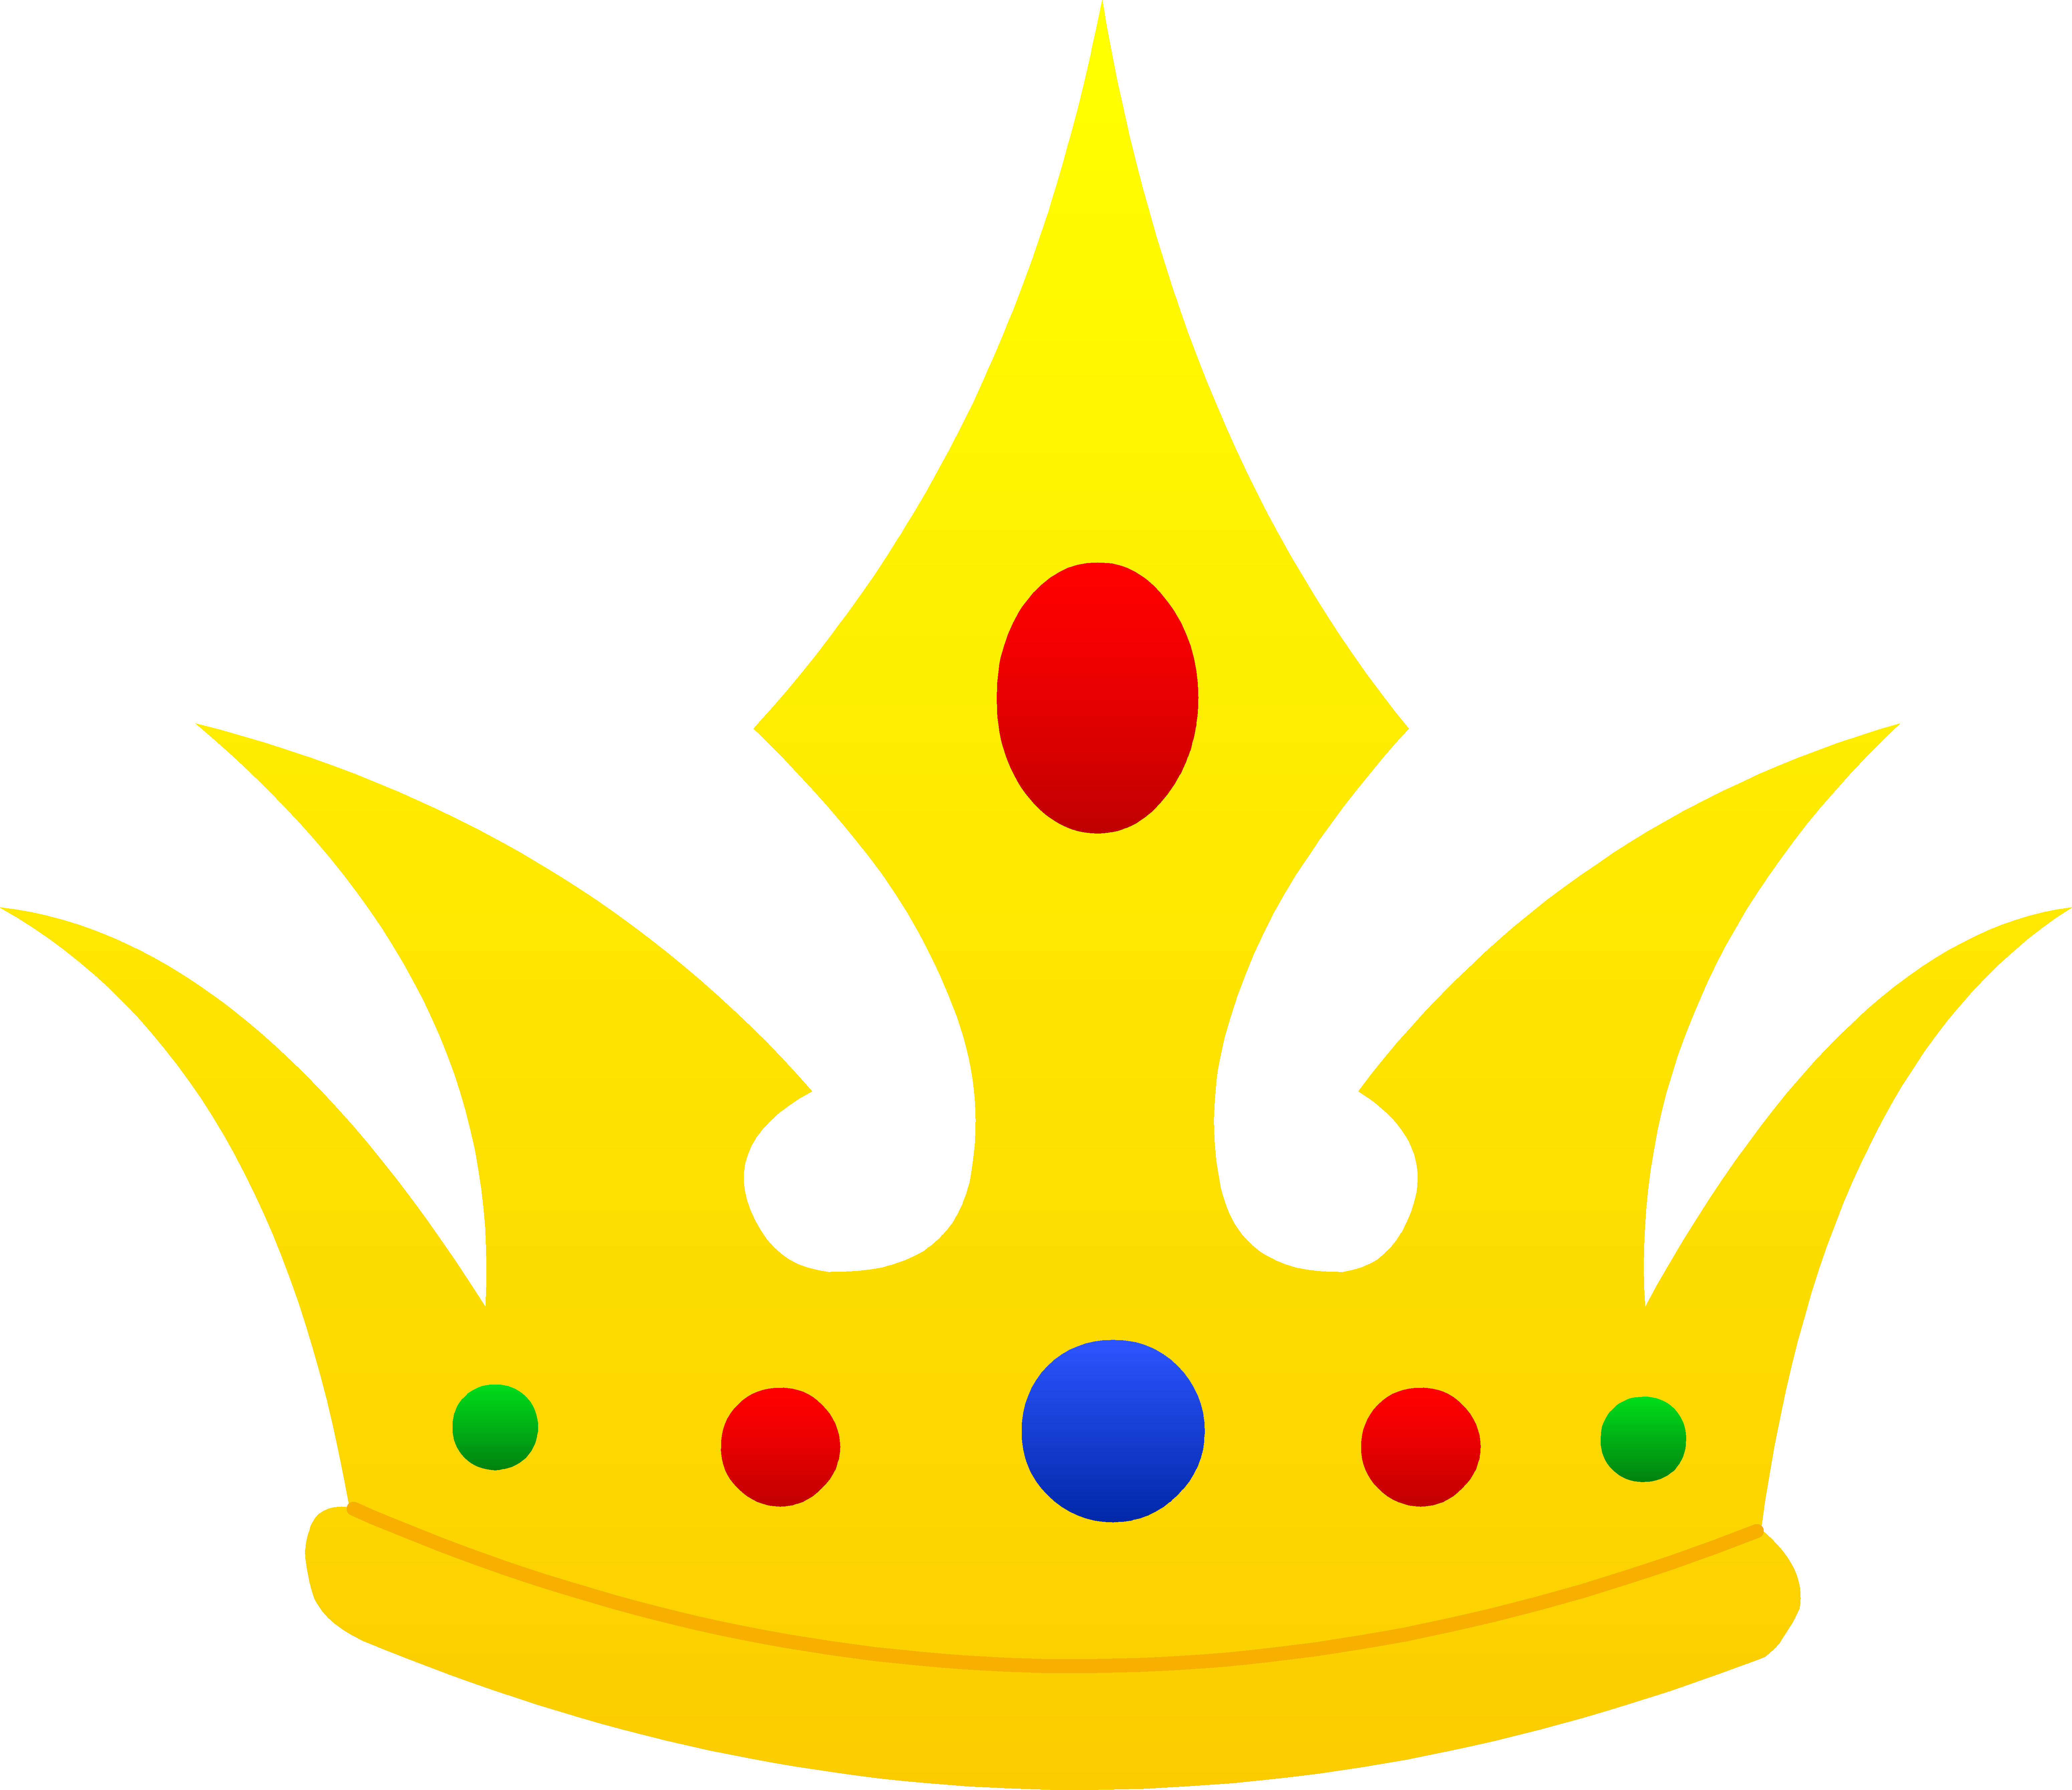 Epiphany clipart kings. King and queen crowns